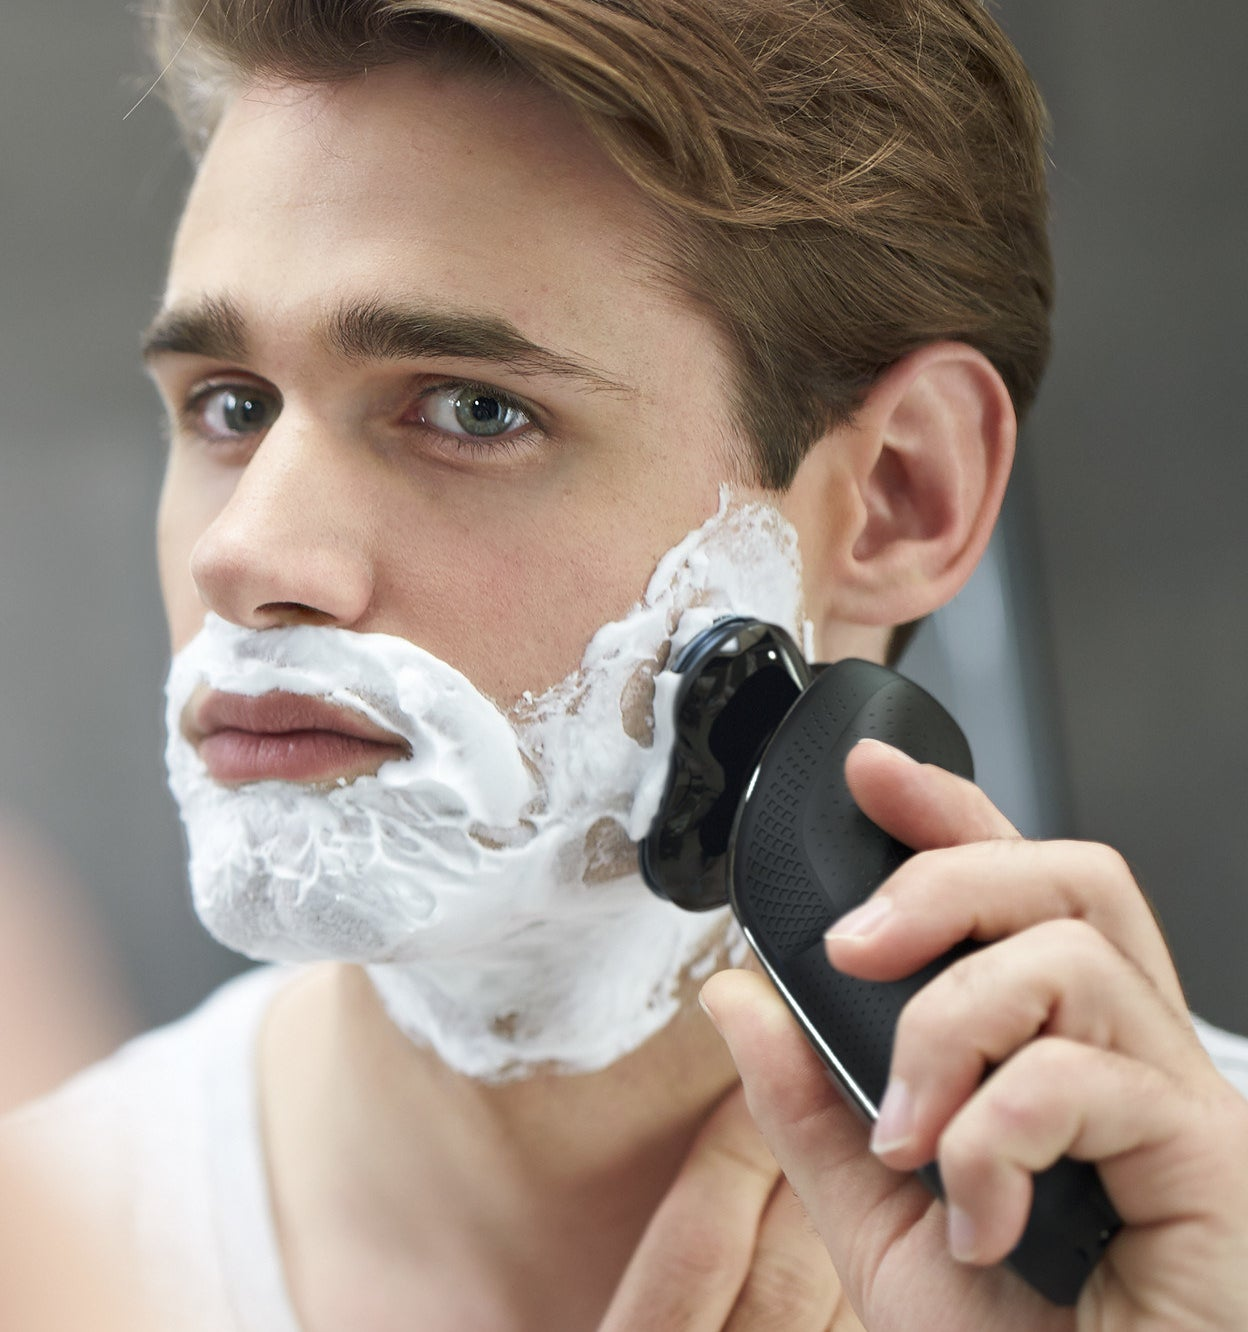 A model uses the product with shaving cream on their face demonstrating that this can be used for wet shaving